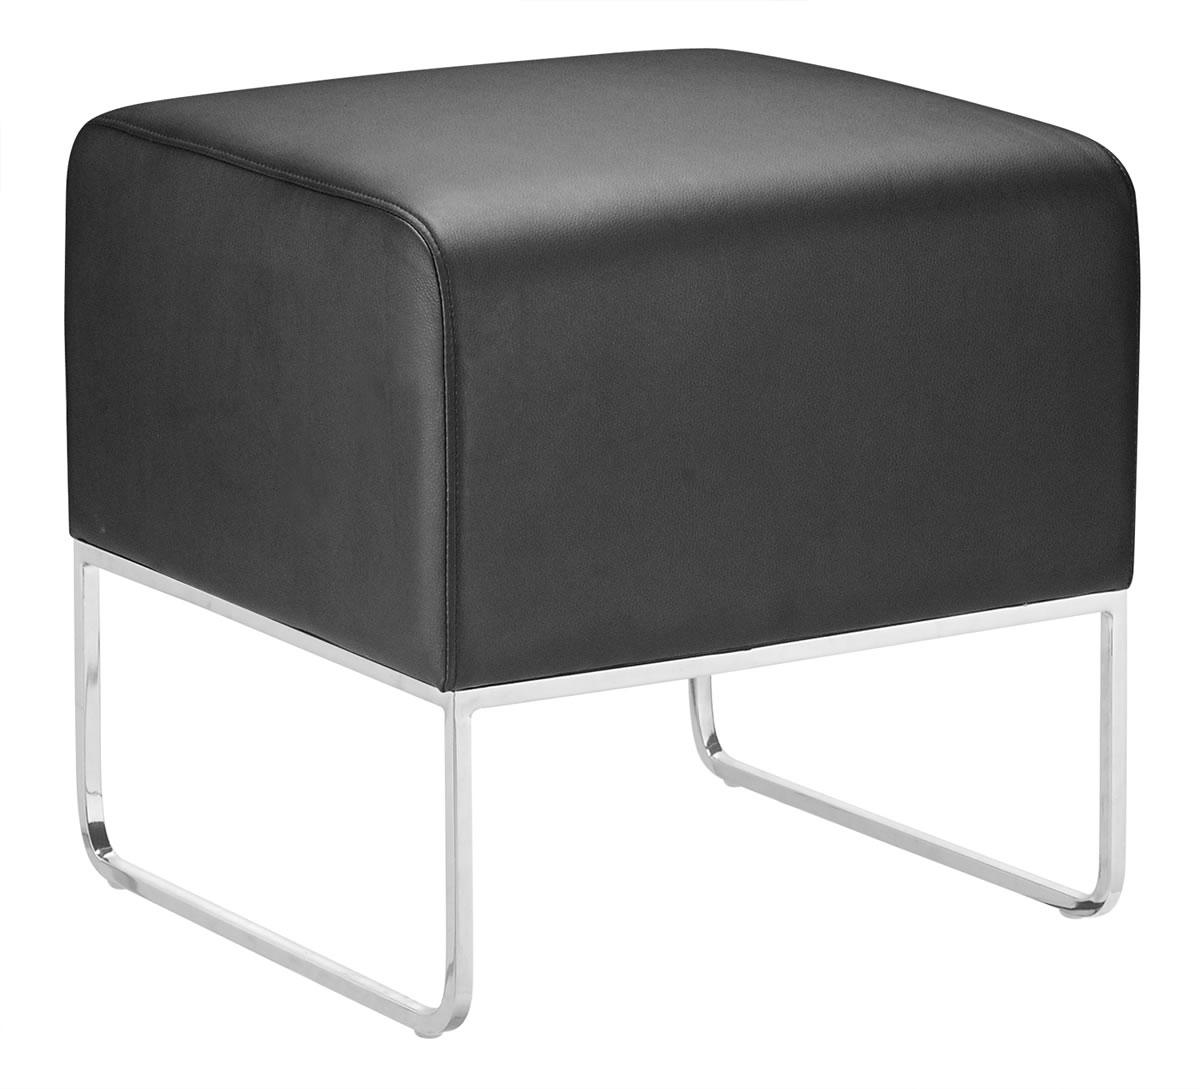 Zuo Occasional Collection Plush Square Ottoman - Item Number: 103003